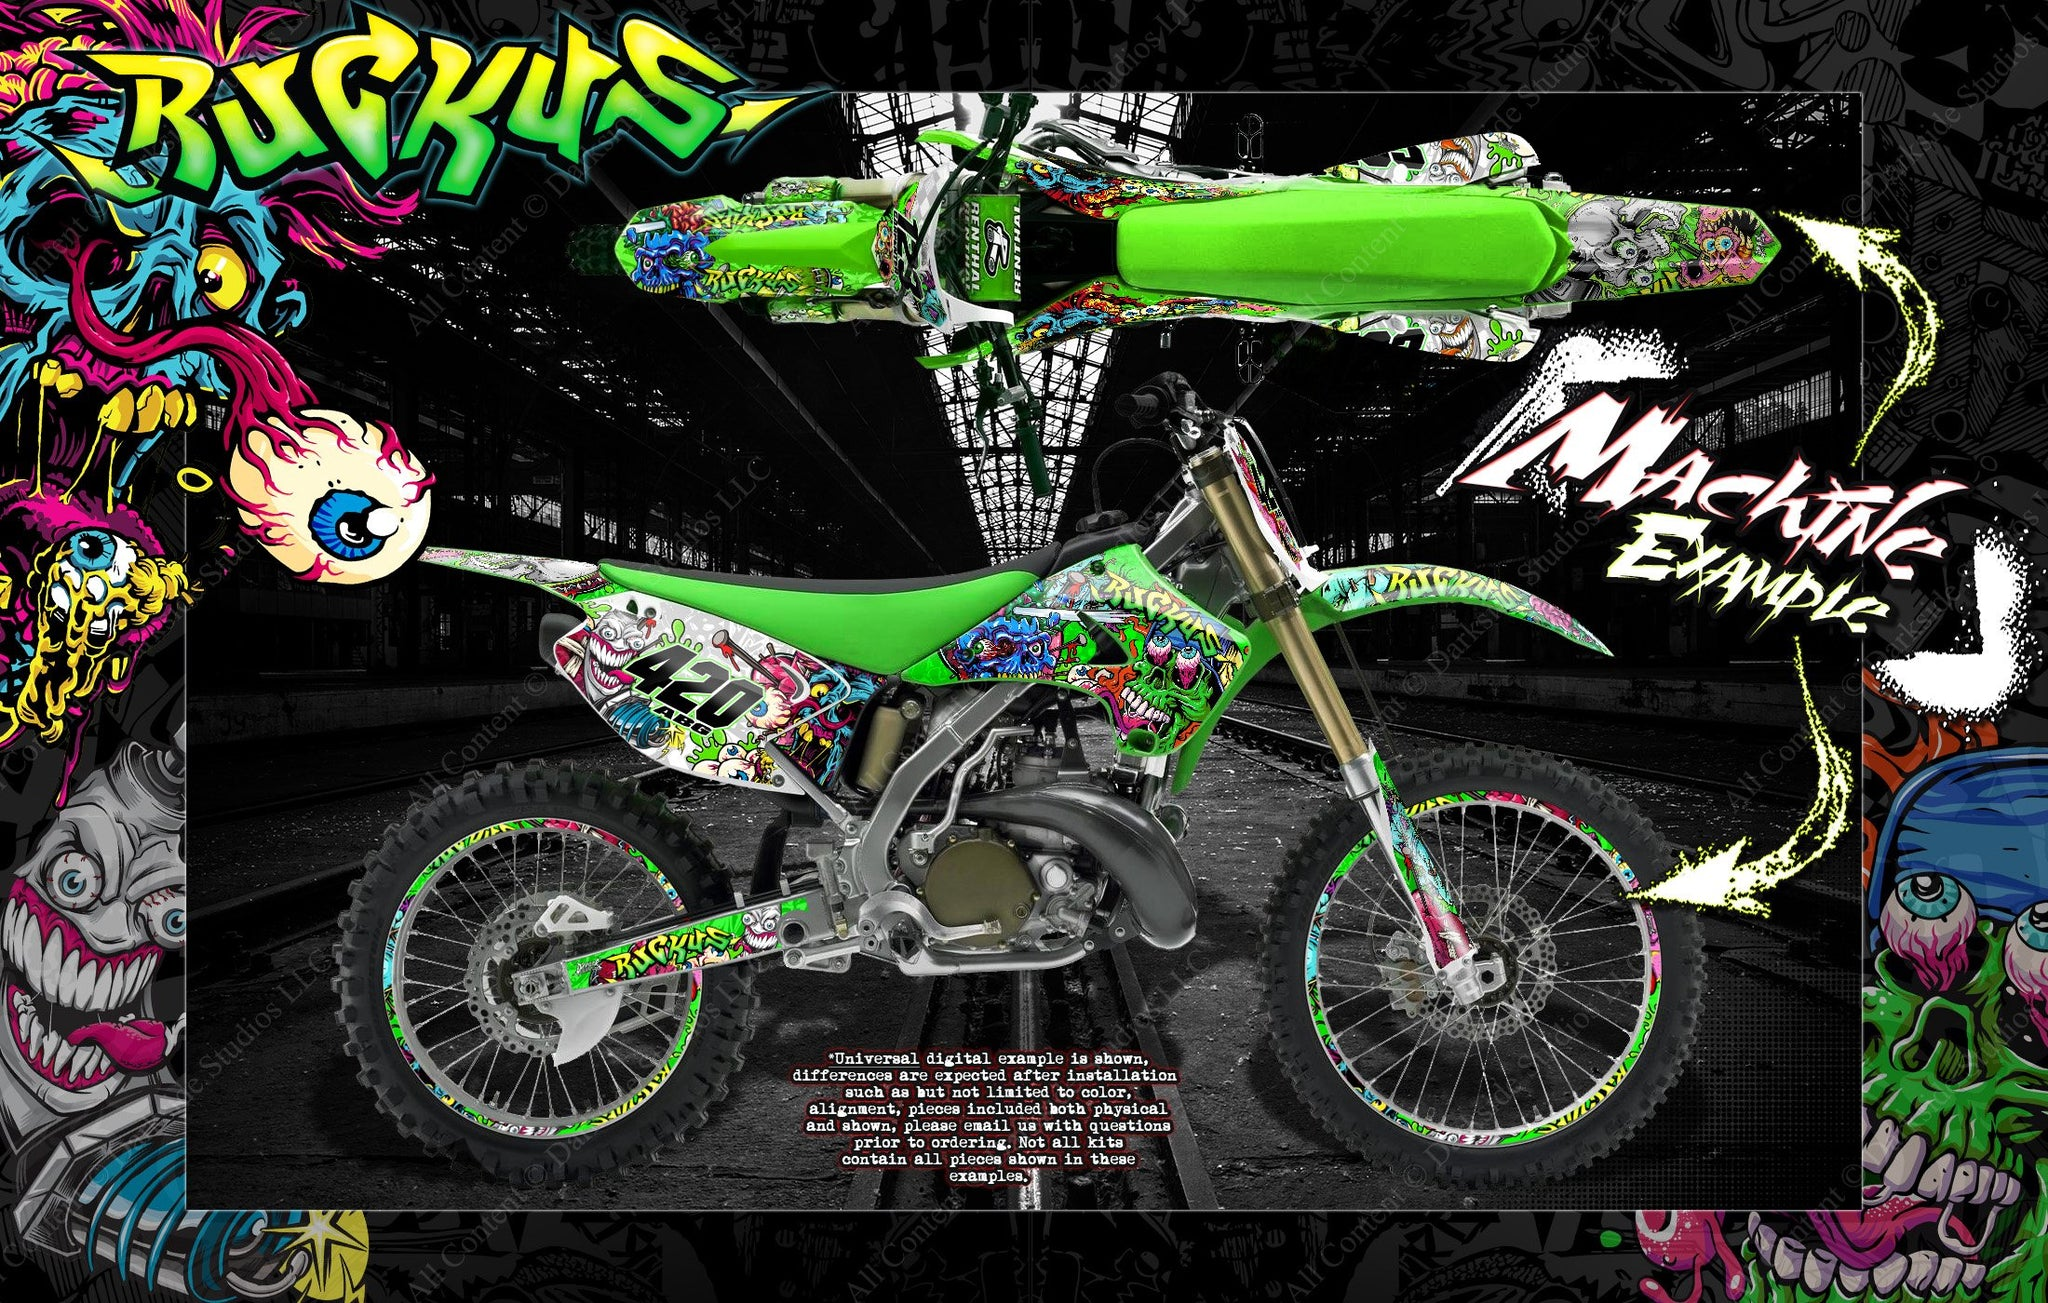 KAWASAKI 1985 KX125 SIDE COVER DECALS GRAPHICS STANDARD VERSION LIKE NOS